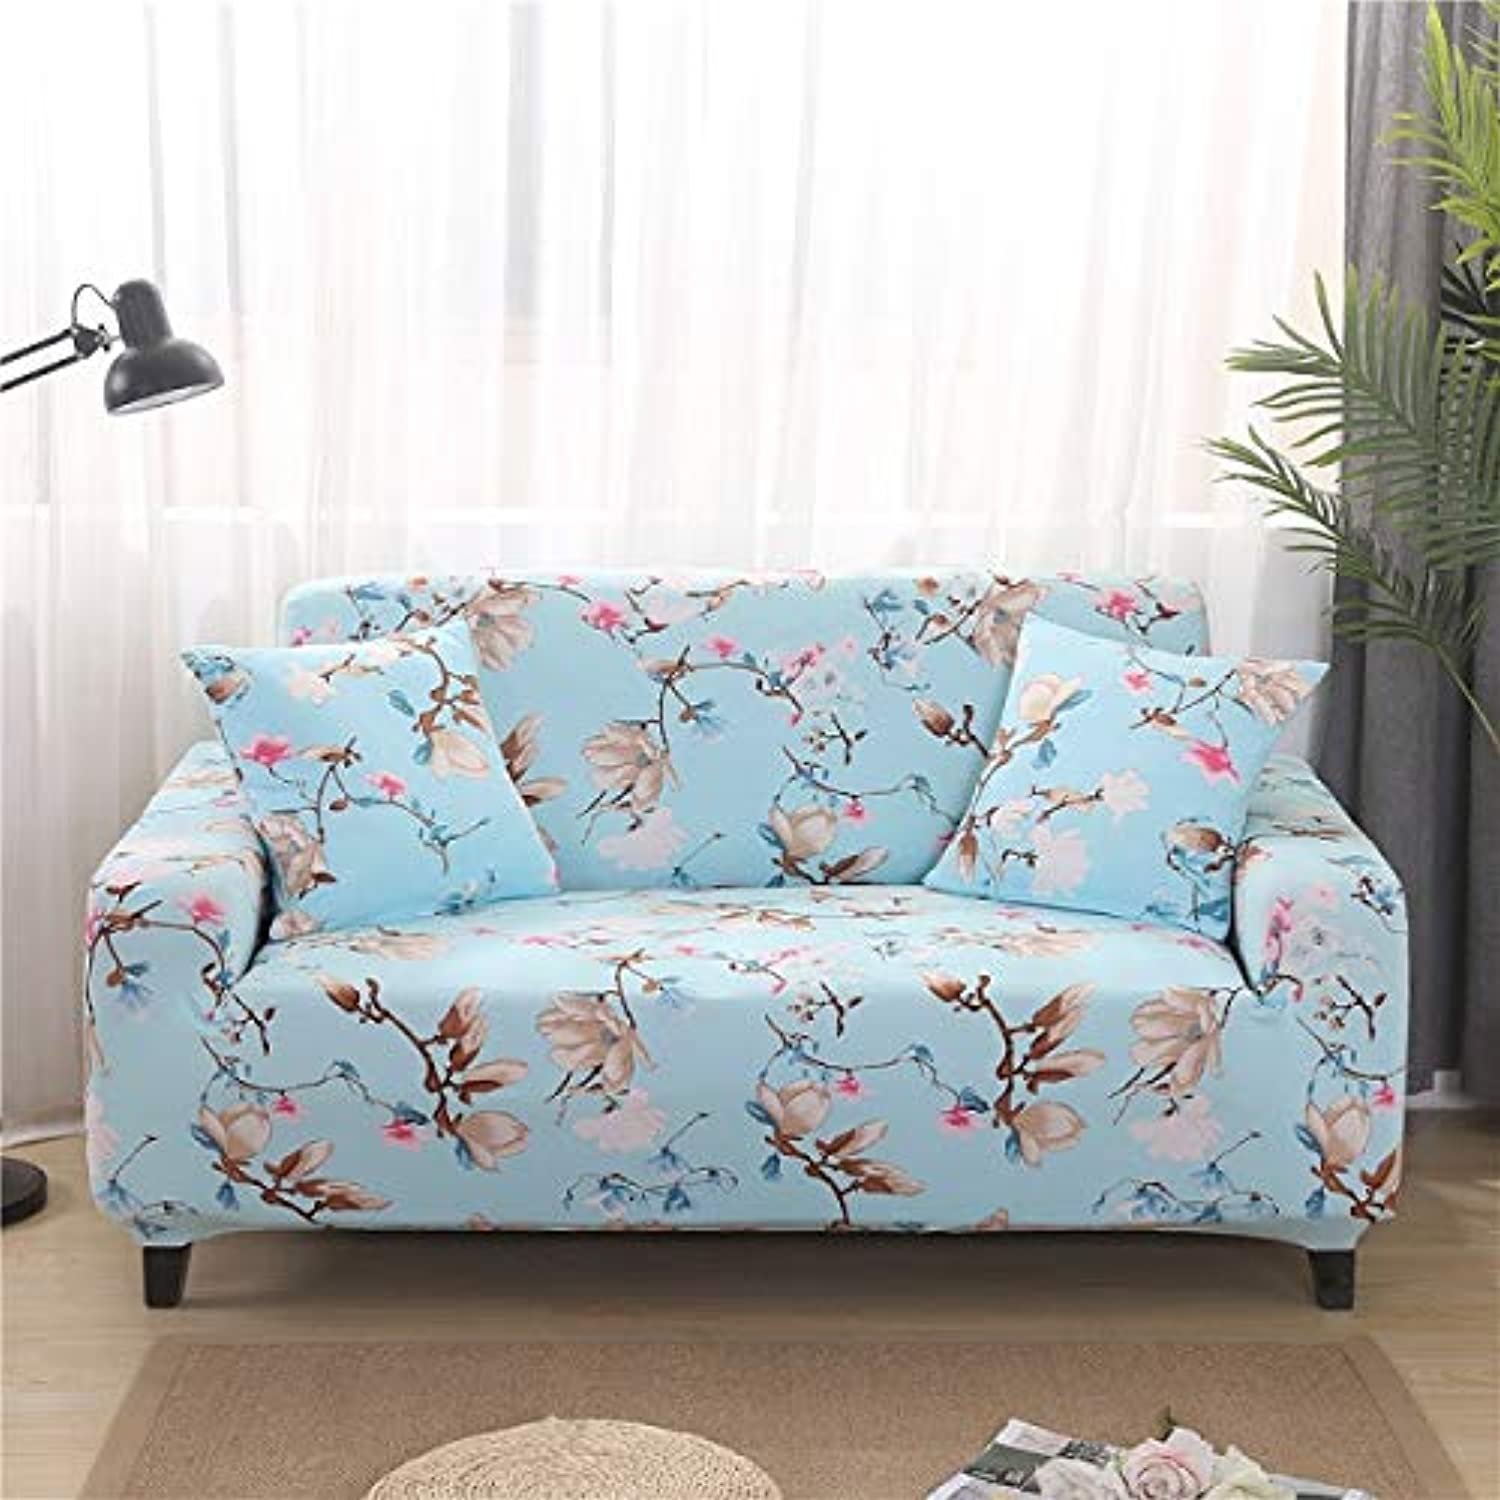 PlenTree 1pcs Elastic Printed Sofa Tight Bag All-Inclusive Sofa Set Elastic Sofa Towels Single Two-Person Three-Seat Four-Seat  qiuyejingmei, 2 Seater